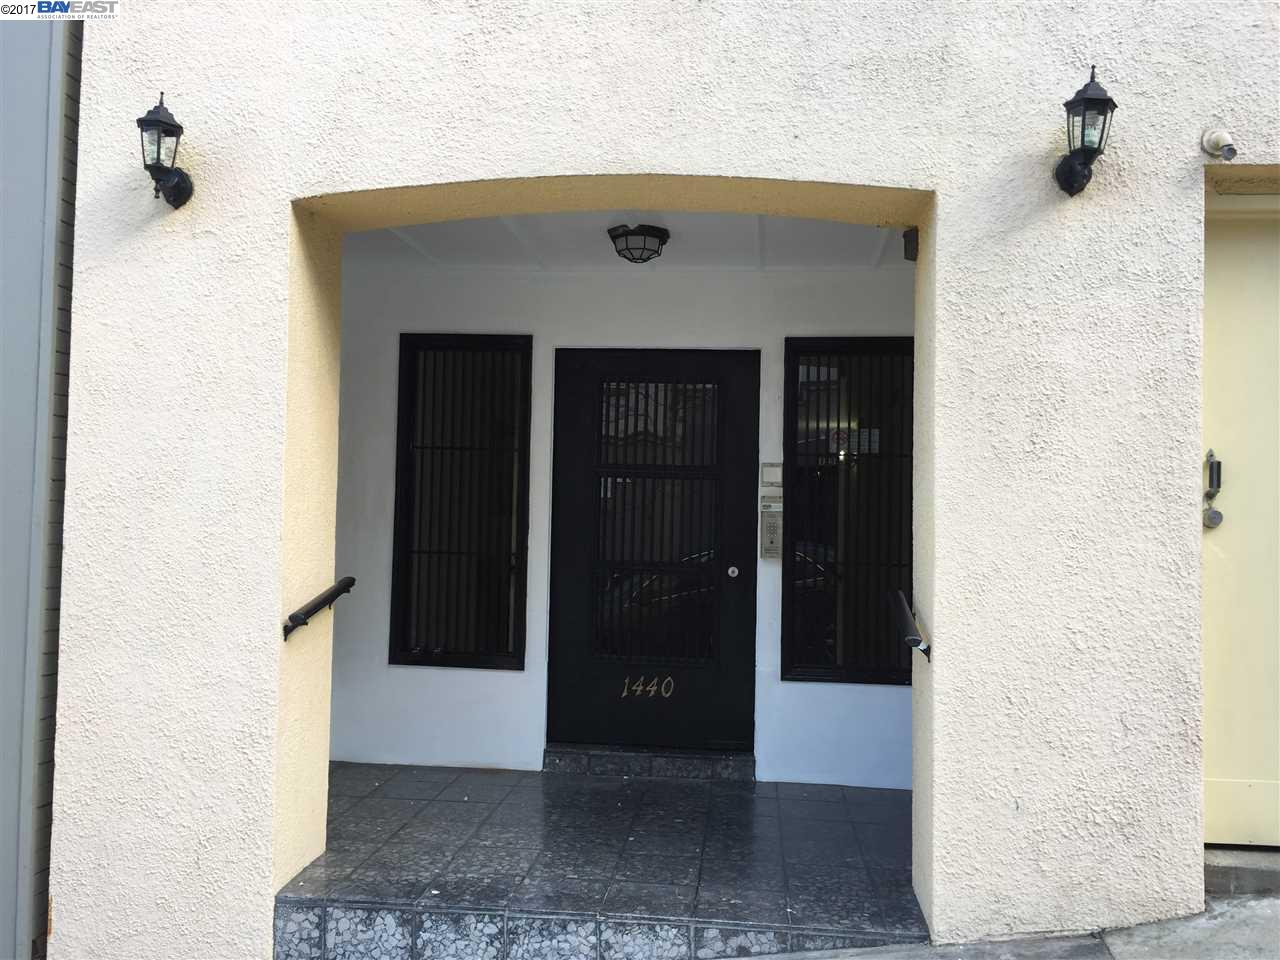 Additional photo for property listing at 1440 Jones 1440 Jones San Francisco, カリフォルニア 94109 アメリカ合衆国